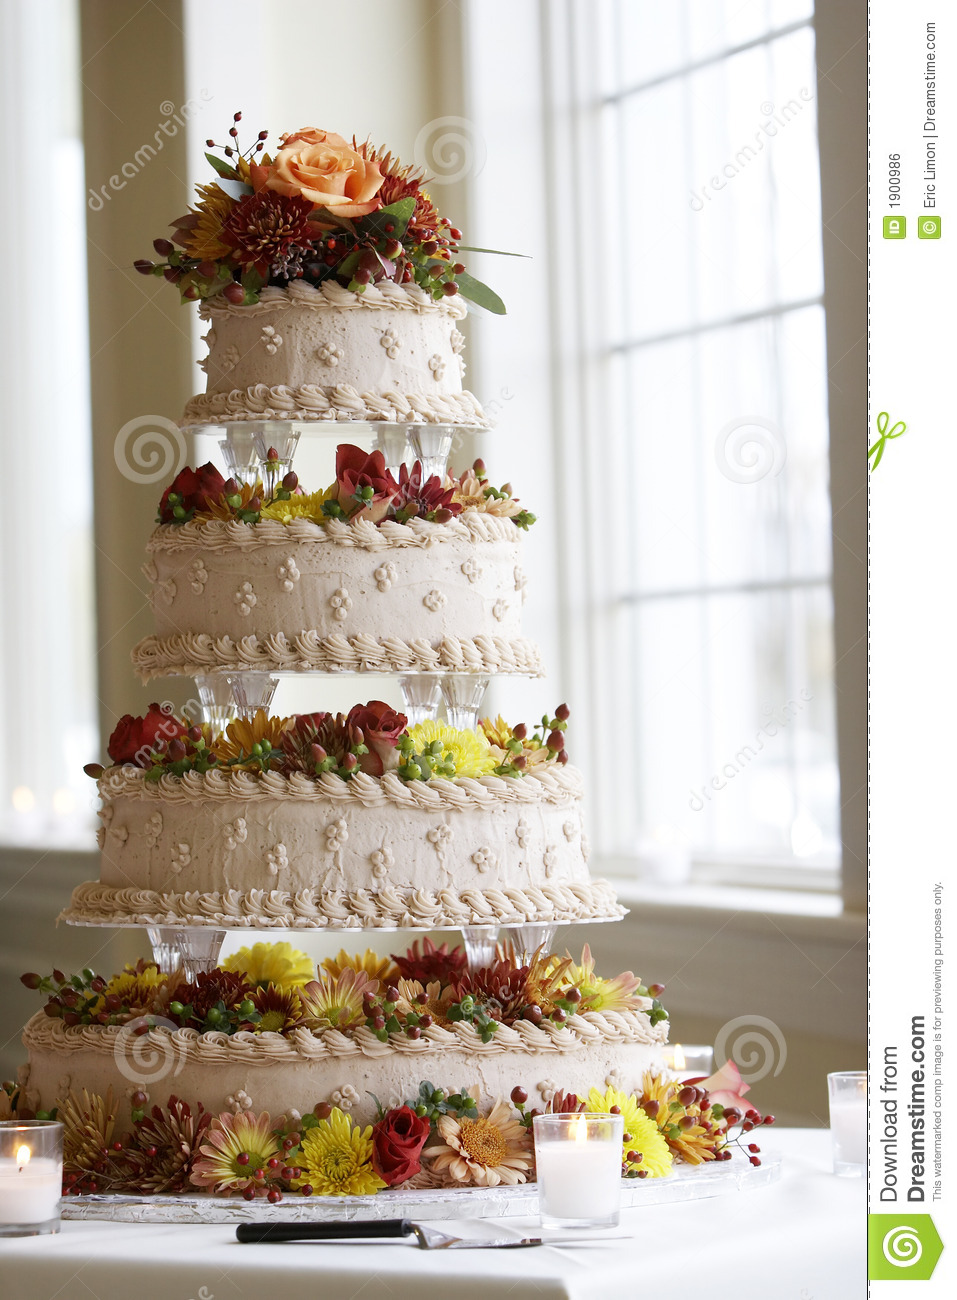 How Cut Wedding Cake